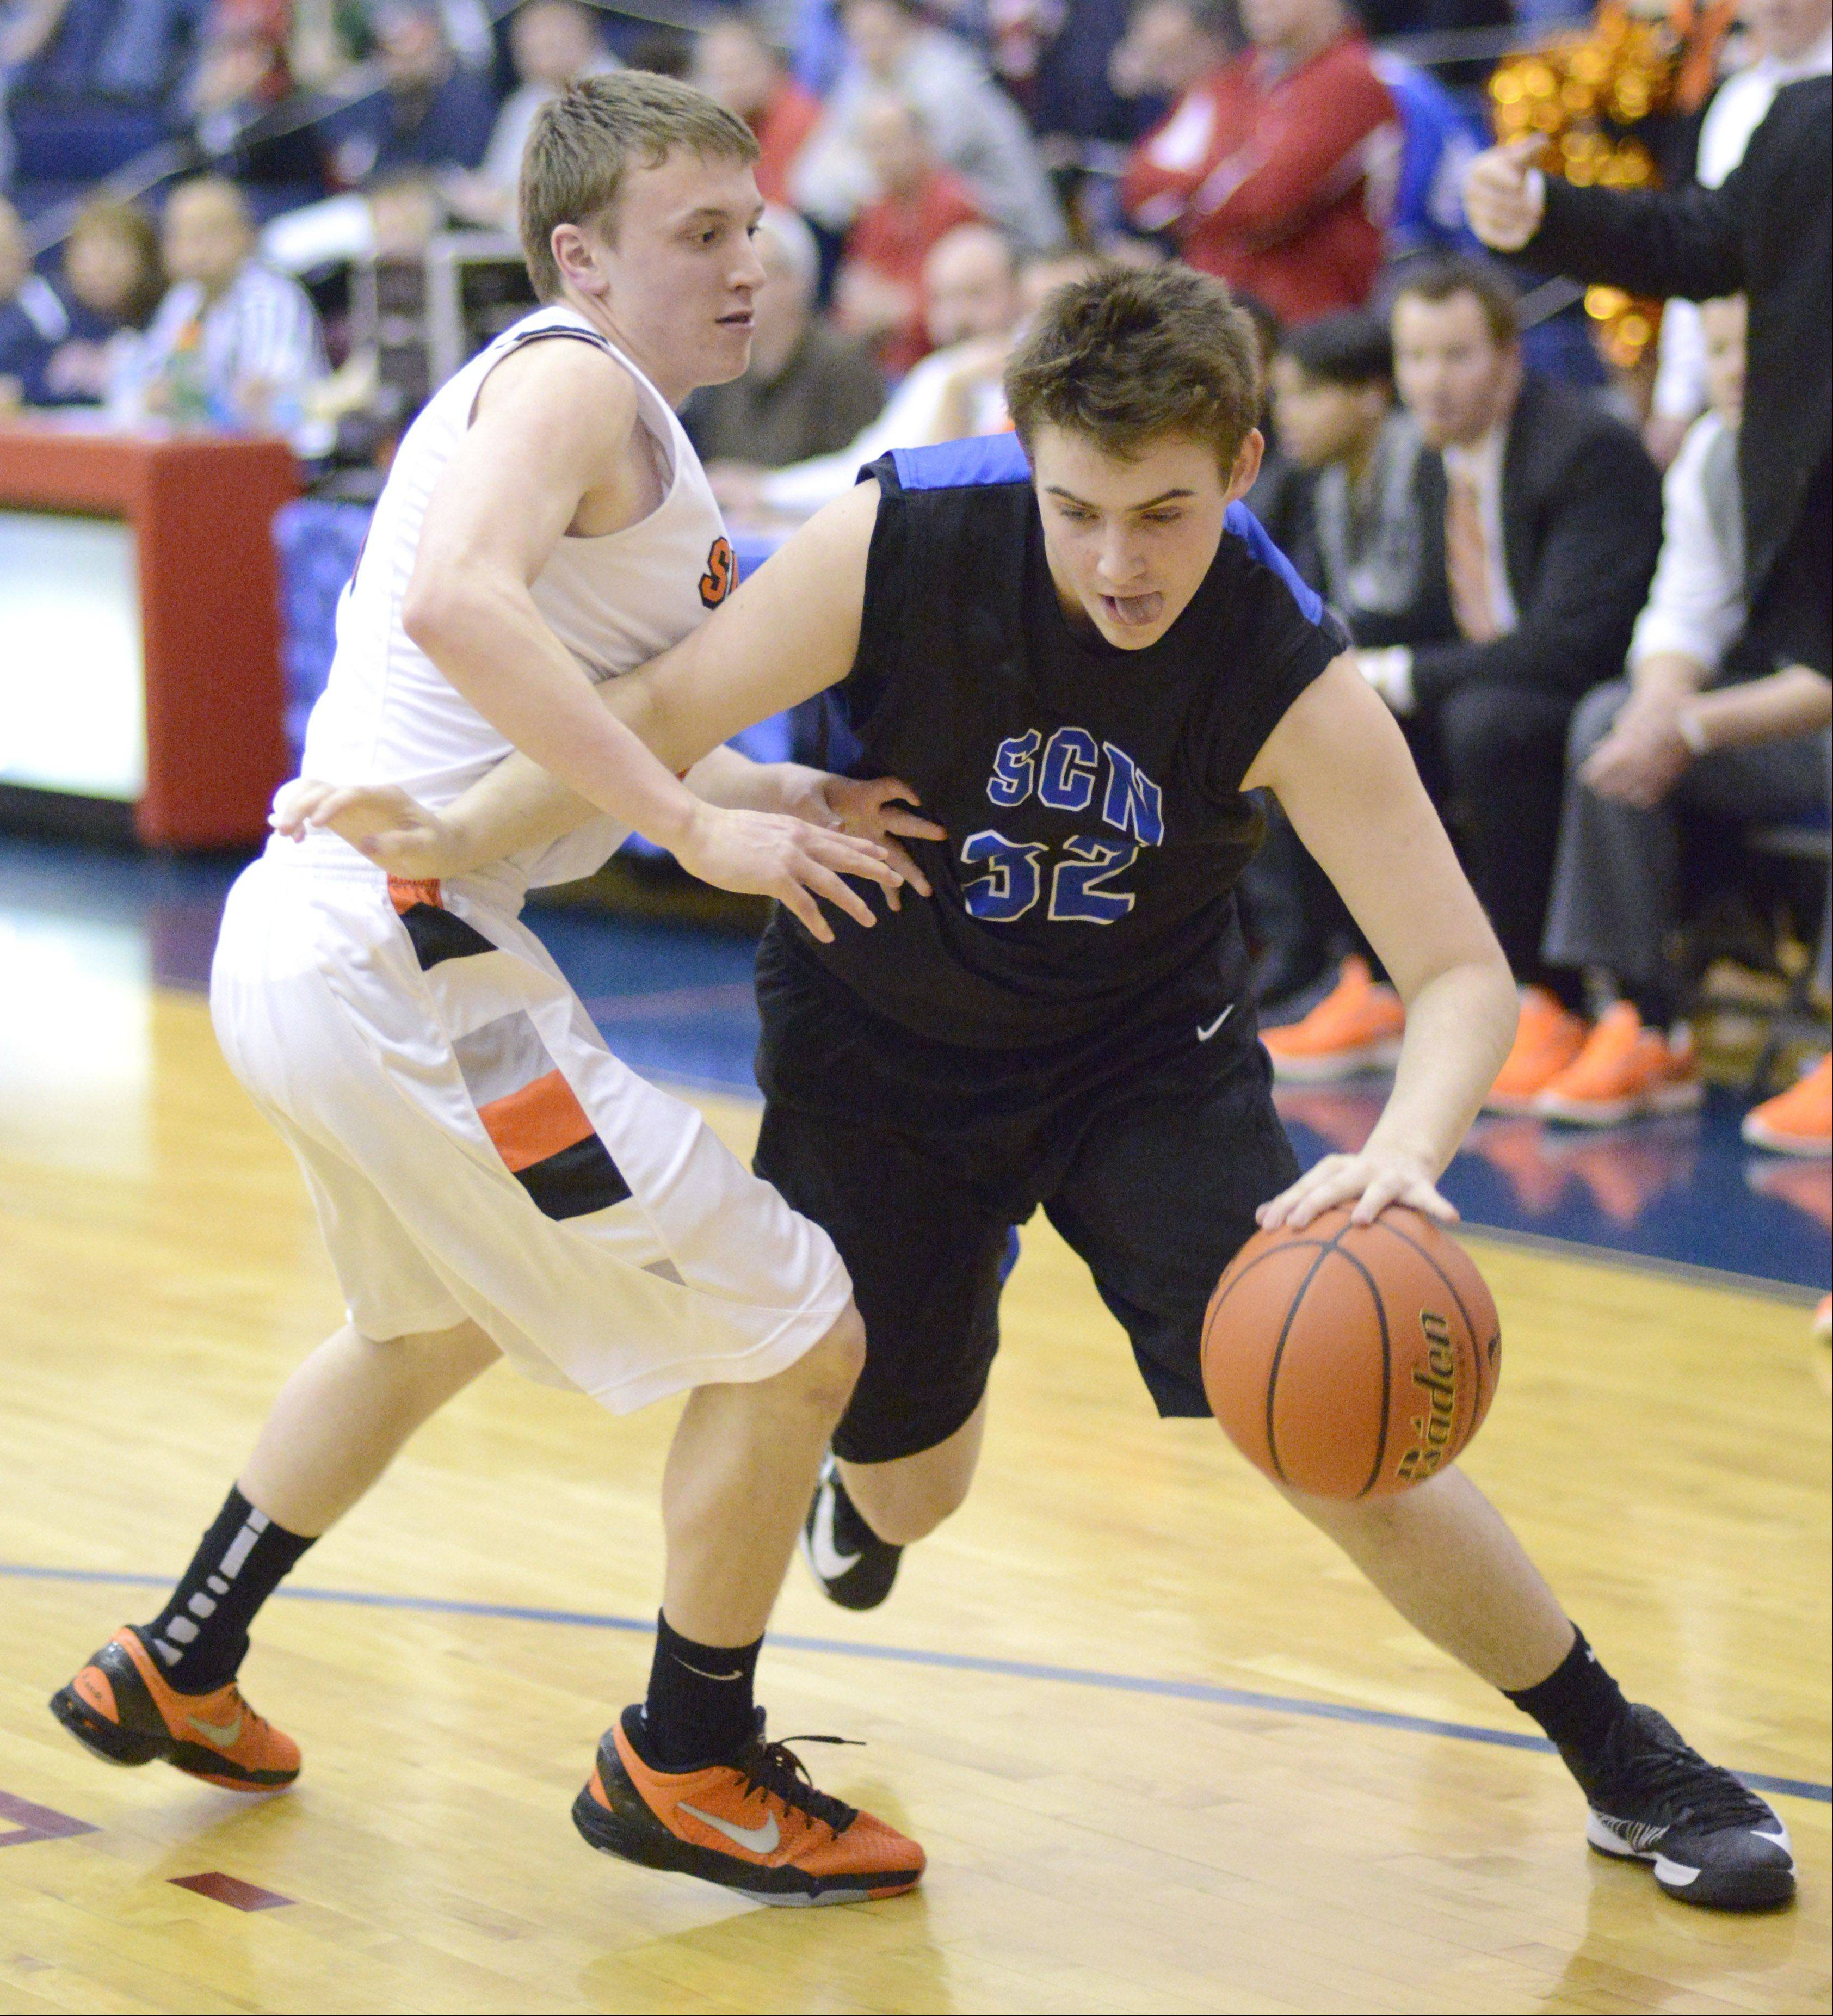 St. Charles North's Jack Callghan maneuvers around St. Charles East's Ethan Griffiths in the second quarter.